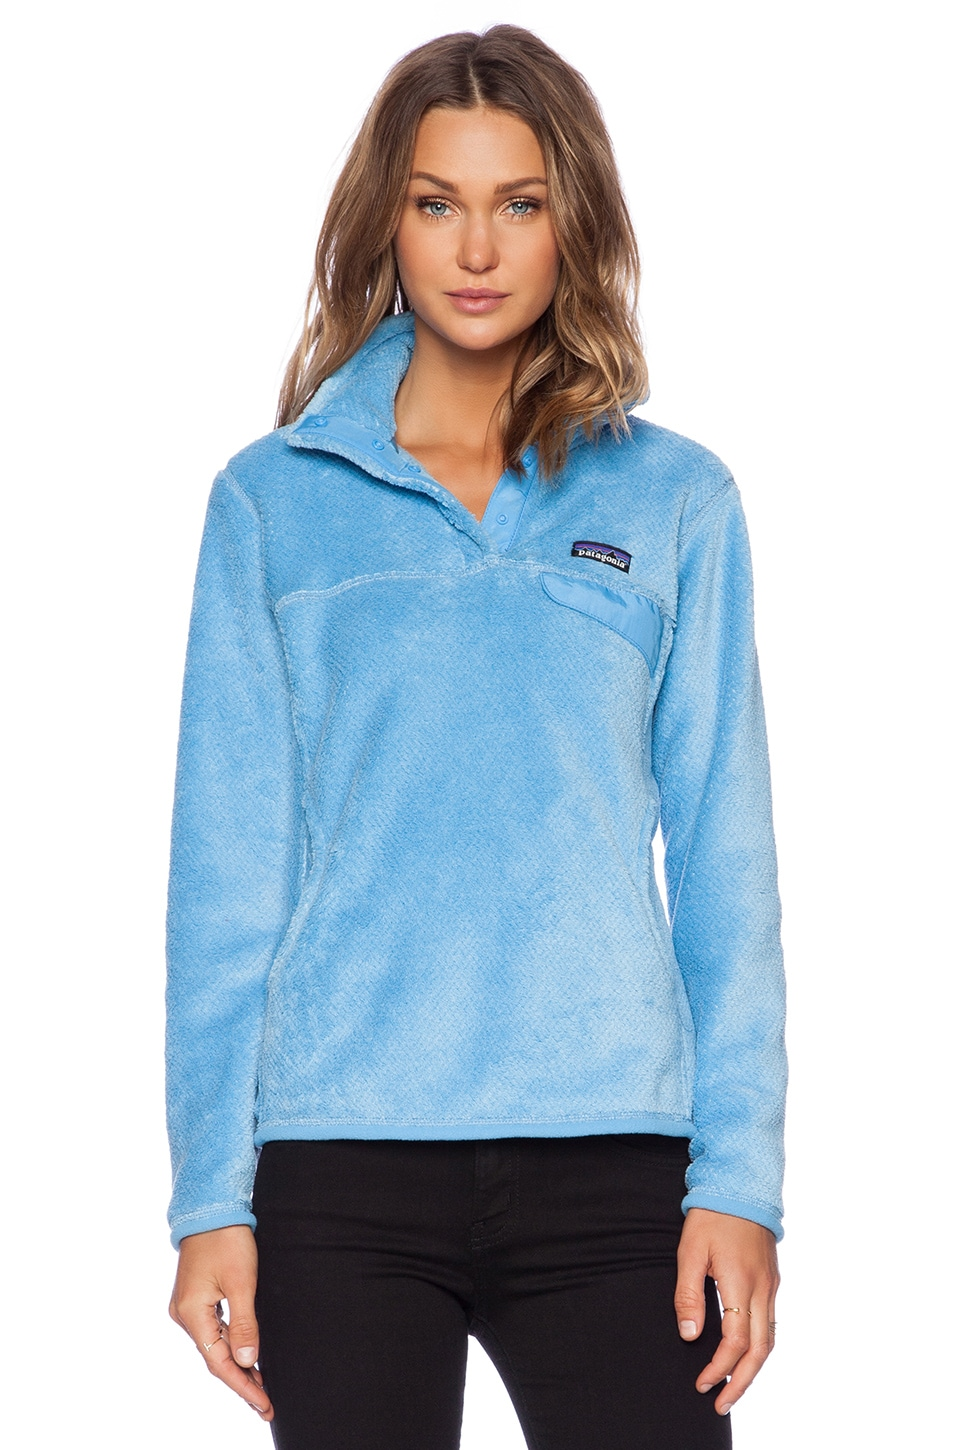 Patagonia Re-Tool Snap-T Pullover in Dusk Blue & Skipper Blue X-Dye